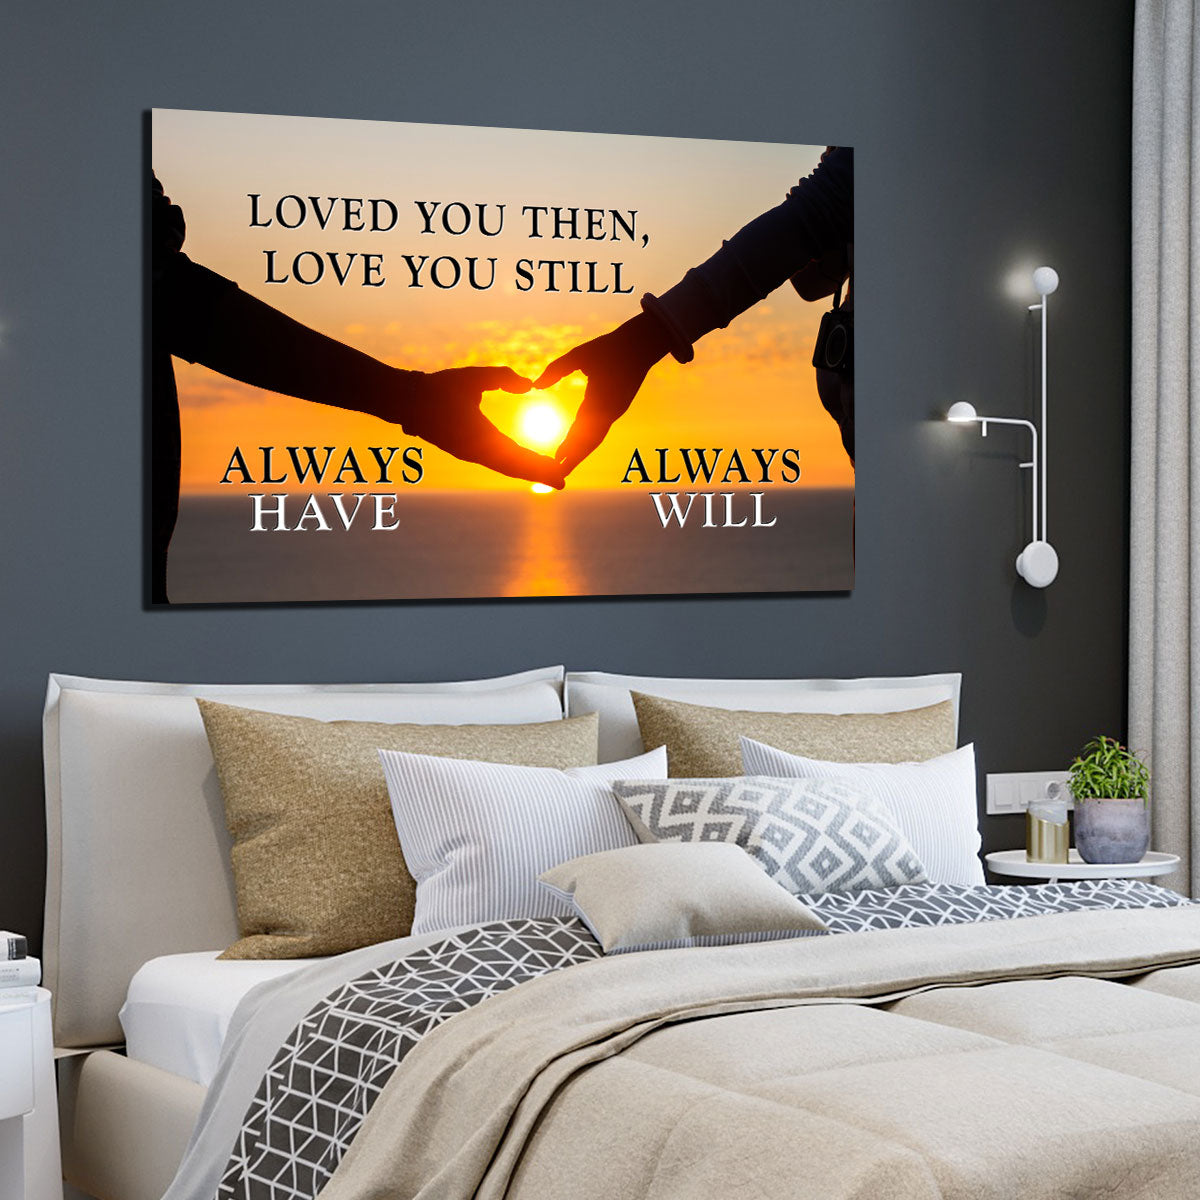 """Loved You Then, Love You Still, Always Have, Always Will."" sunset canvas wall art"